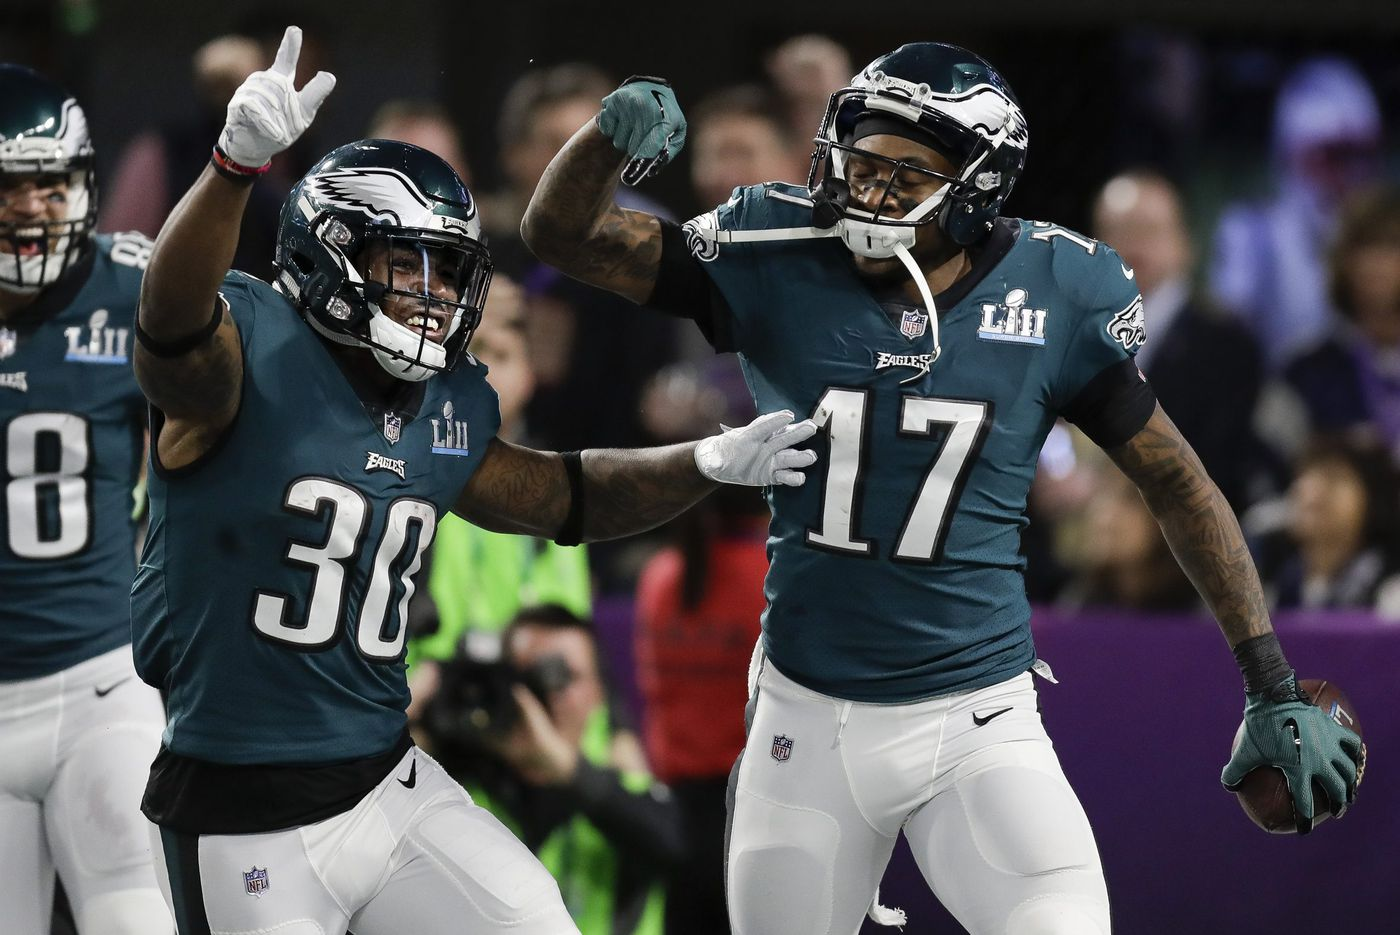 Eagles-Colts inactives: Corey Clement in, Alshon Jeffery out, Josh Sweat and Josh Adams to debut